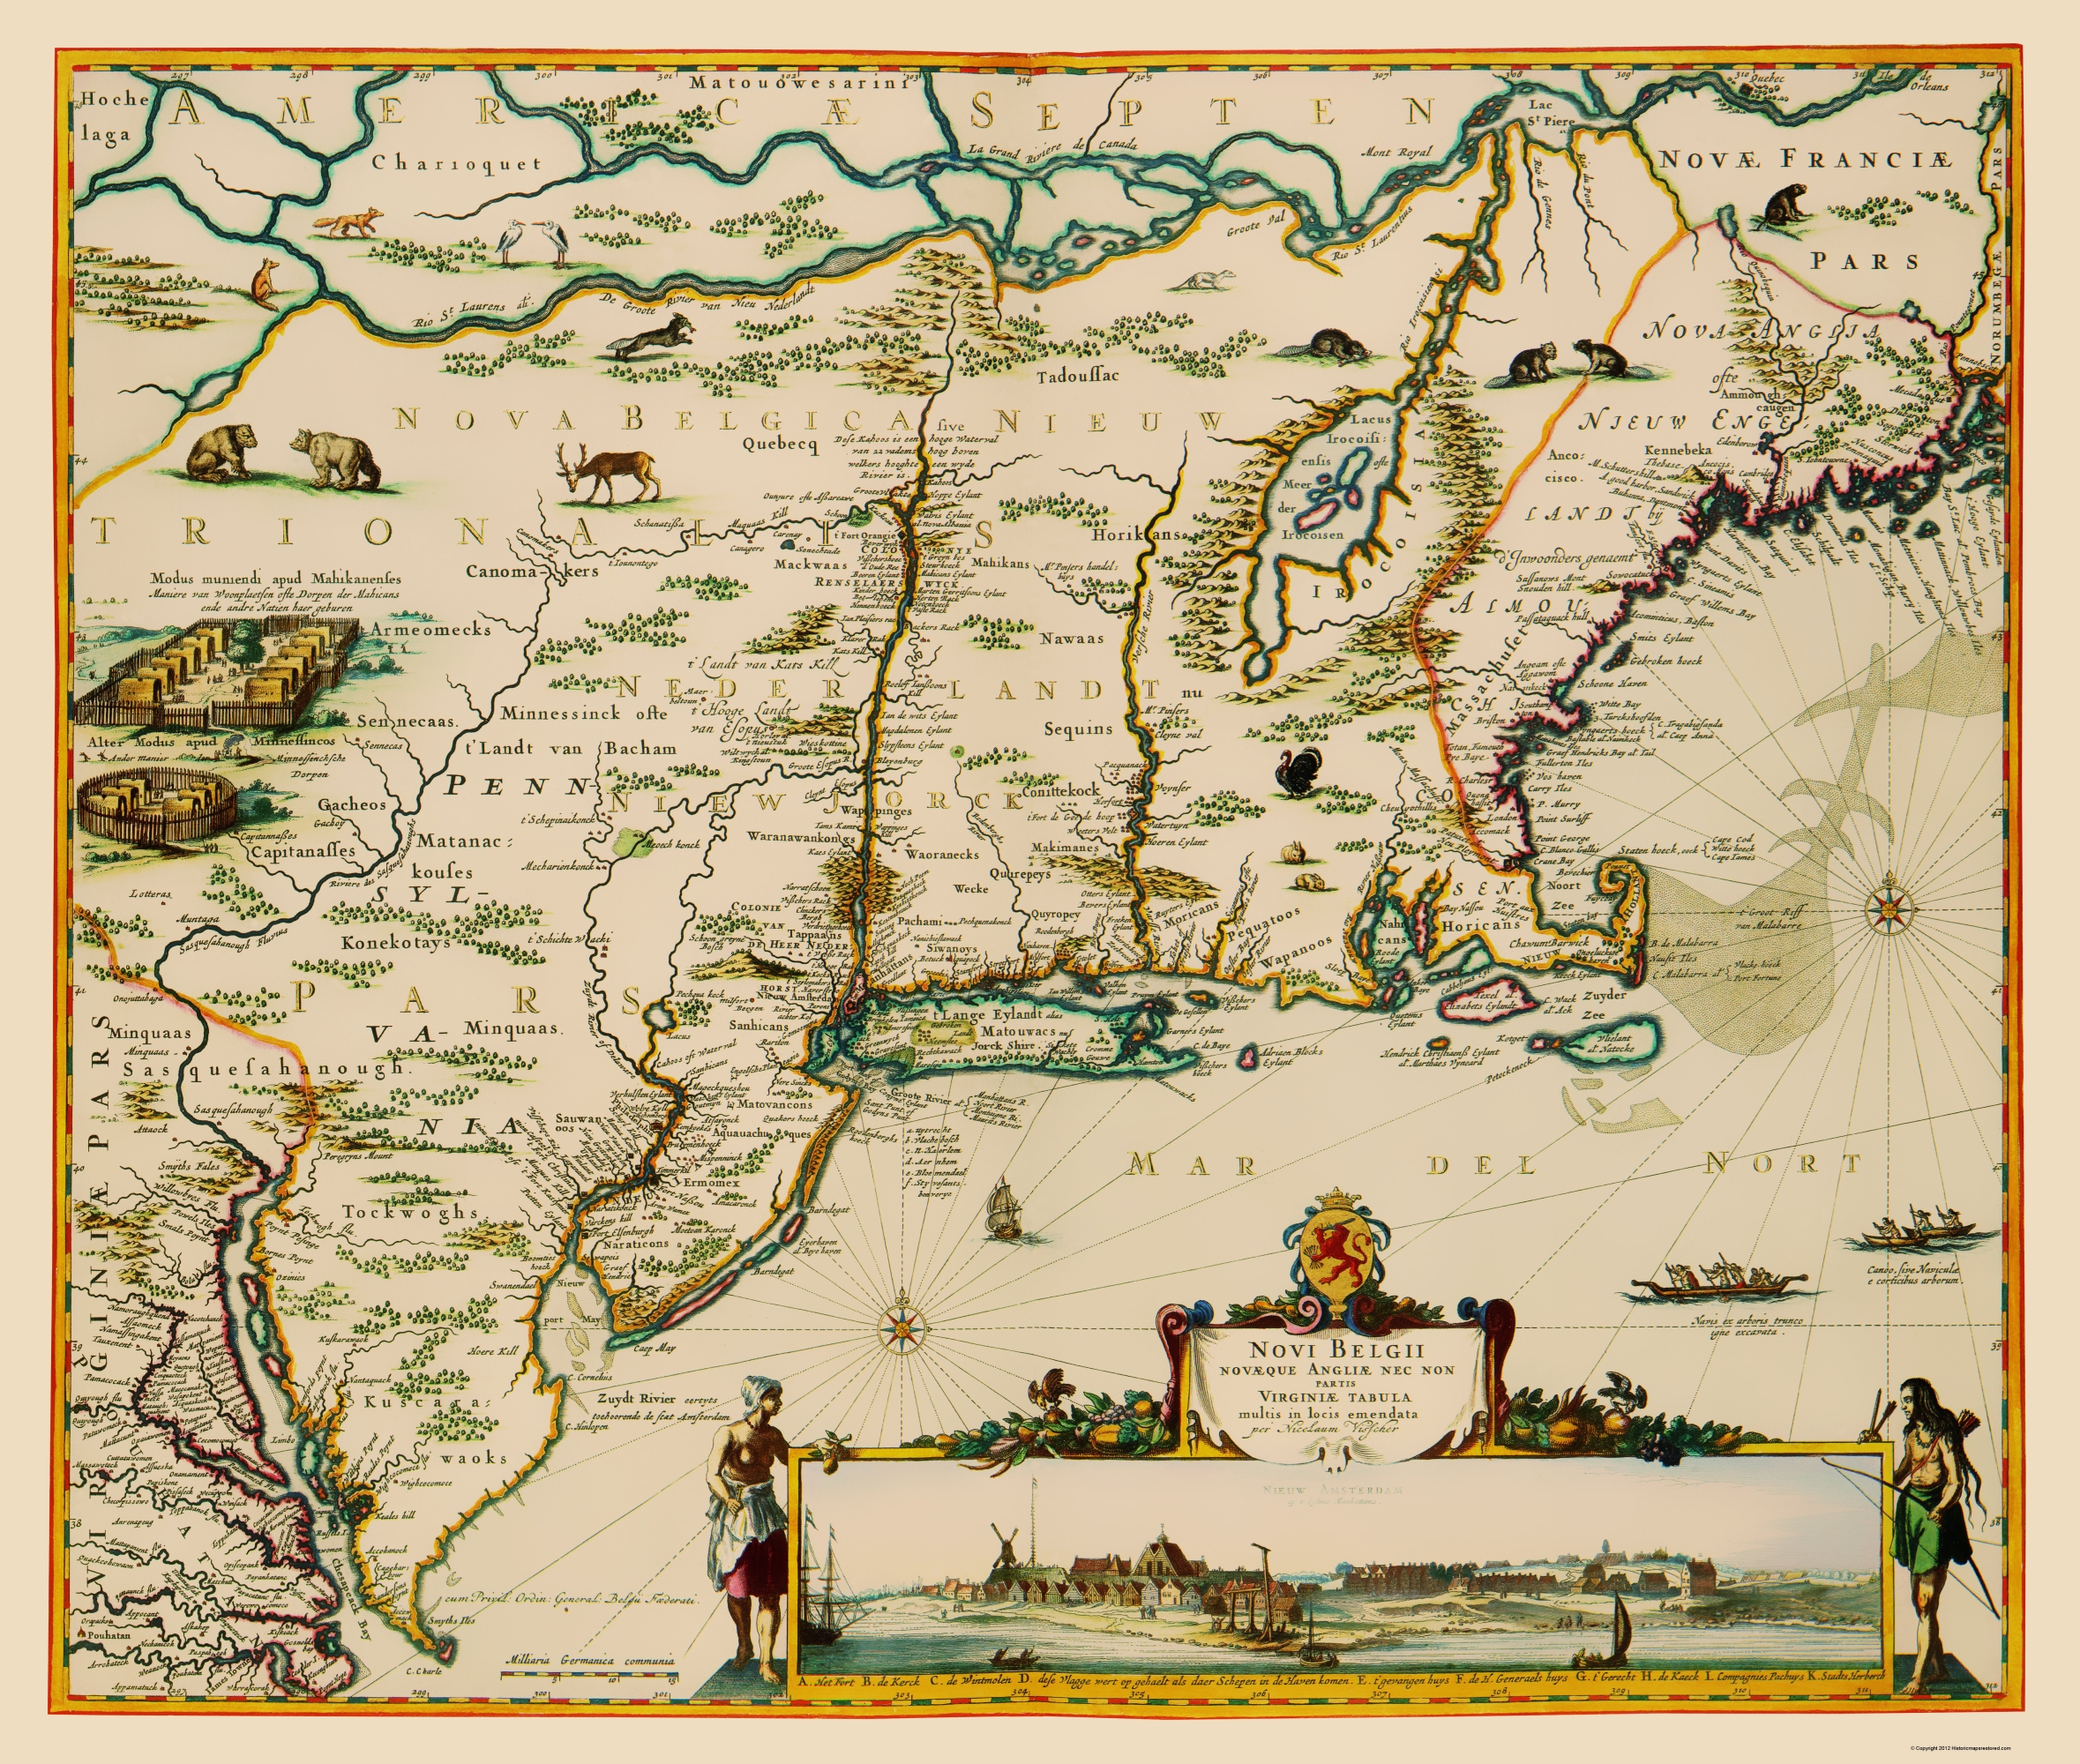 Old Map Us East Coast Chesapeake Bay To Maine 1685 - Old-map-of-us